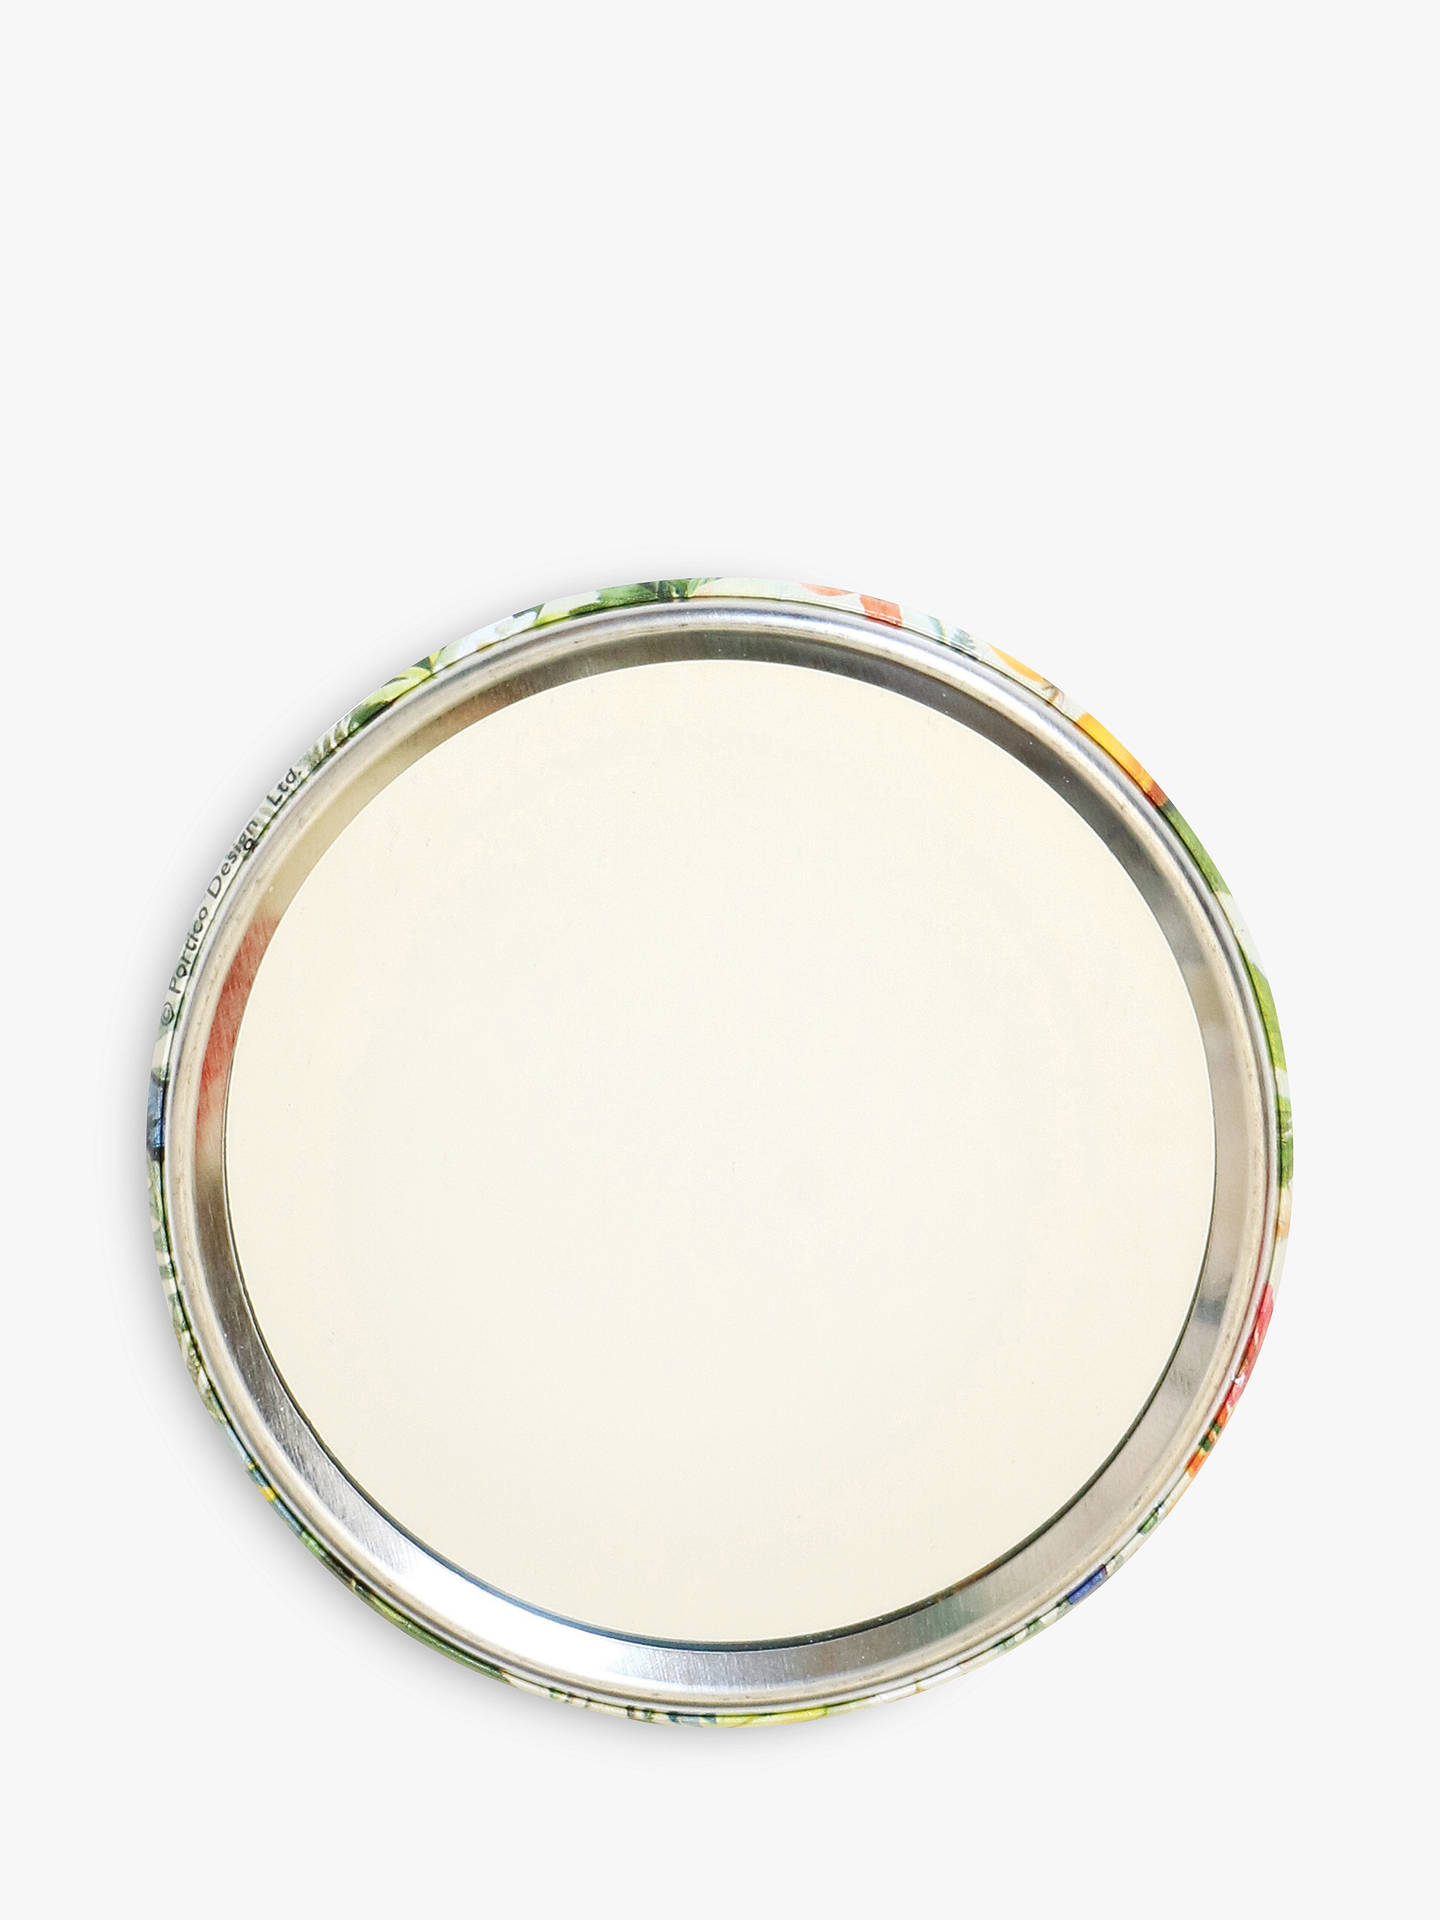 Archive Archive Cosmetic Compact Mirror At John Lewis Partners